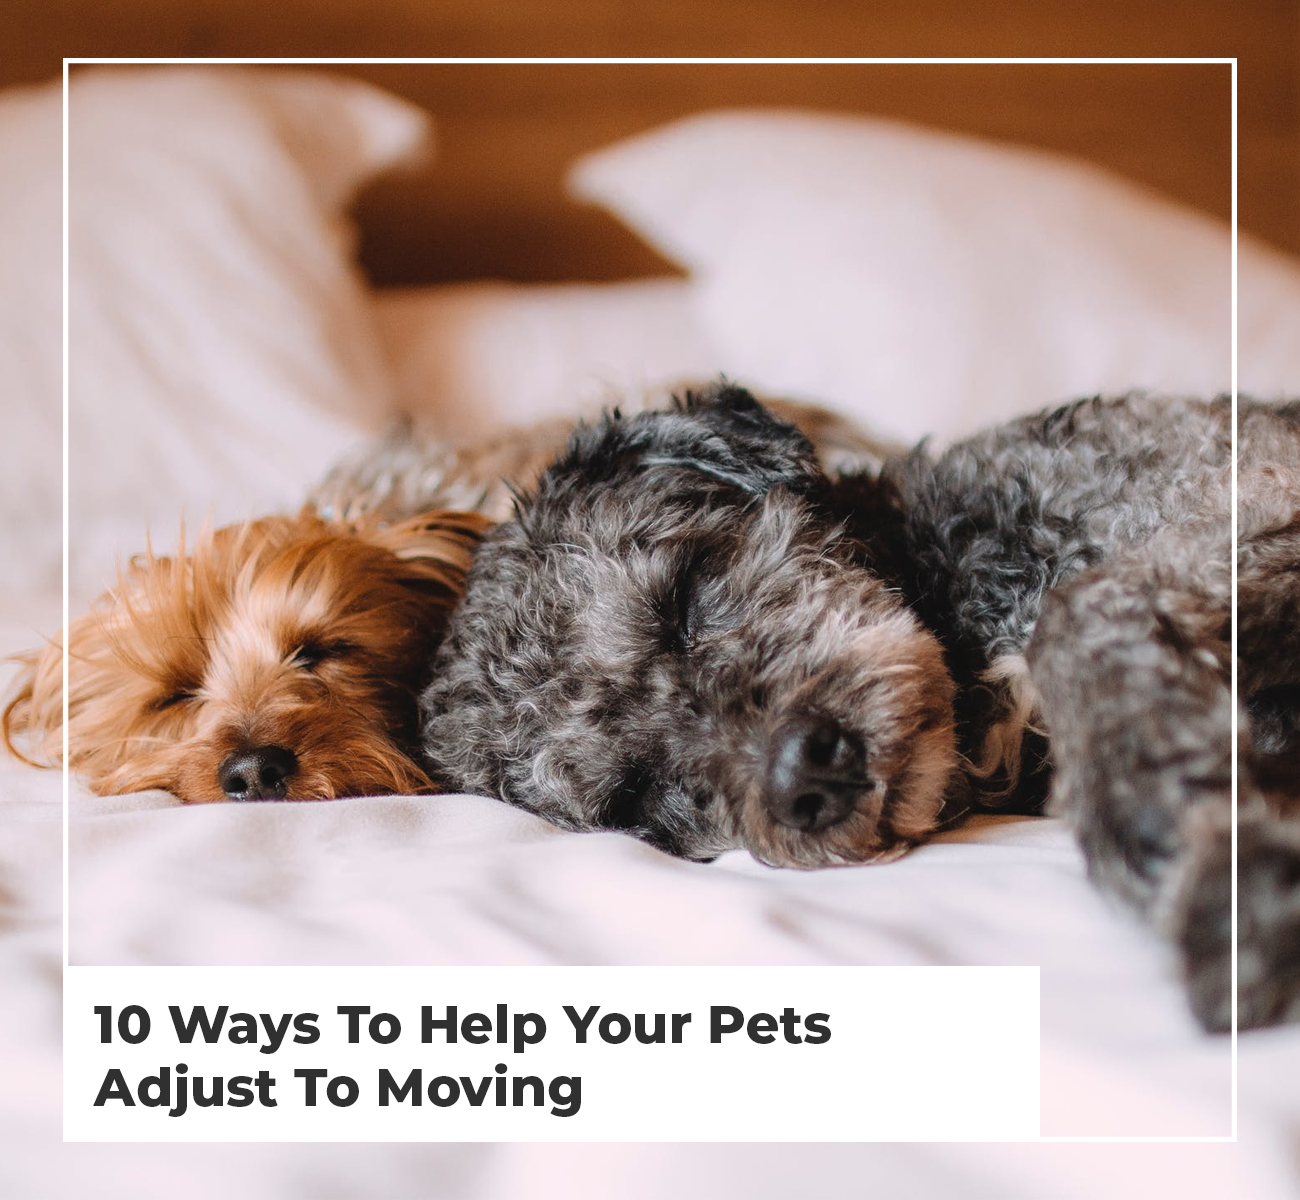 10 Ways To Help Your Pets Adjust To Moving